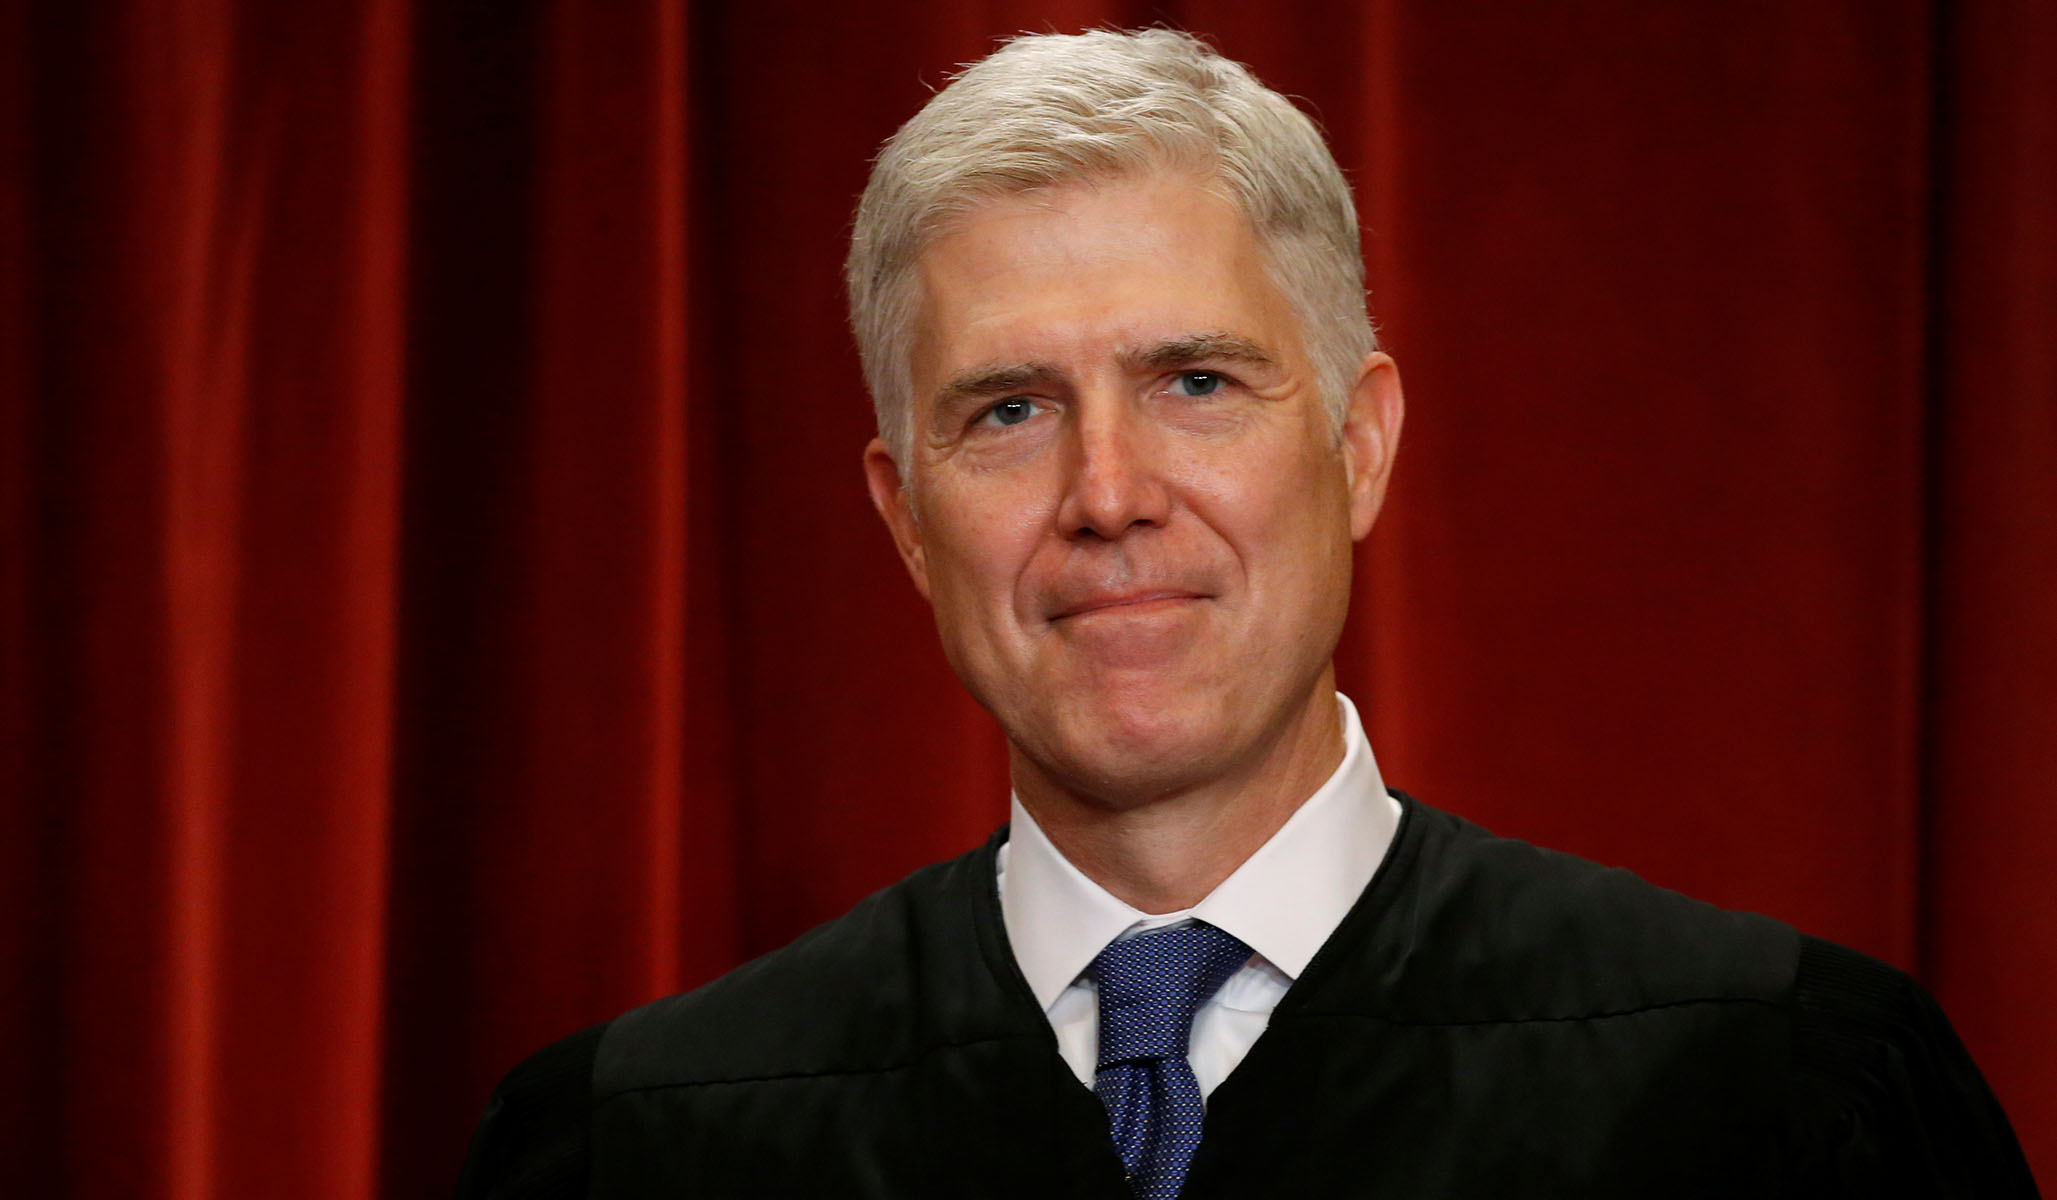 Mau-Mauing Justice Gorsuch on Title VII and Sex Discrimination